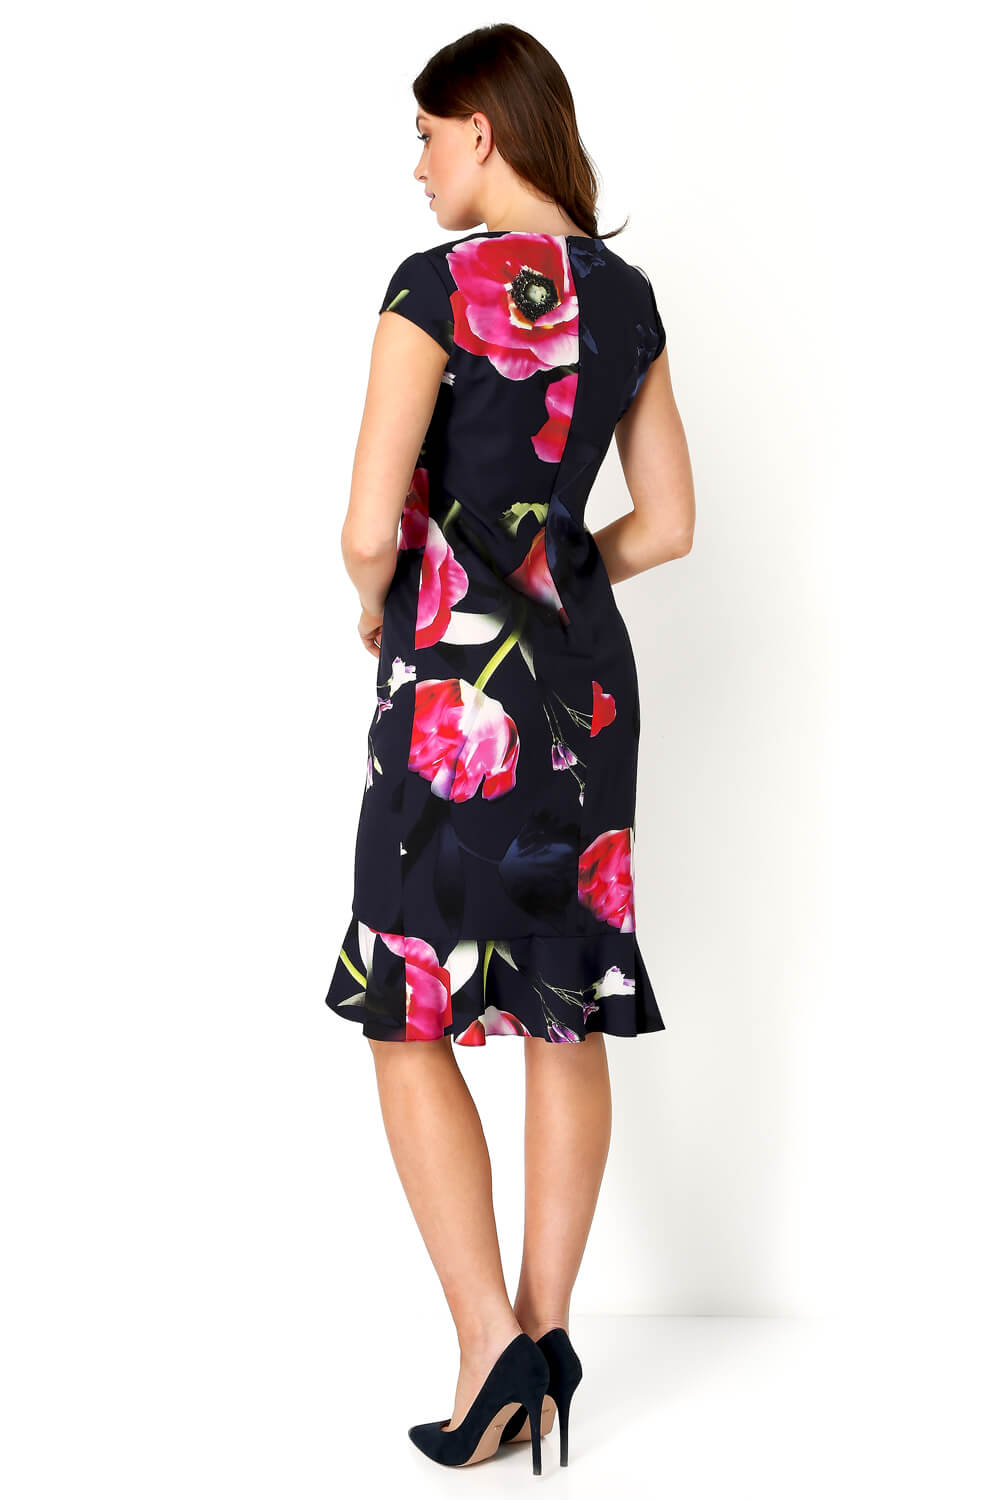 Roman-Originals-Women-Floral-Print-Midi-Ruffle-Hem-Dress thumbnail 16